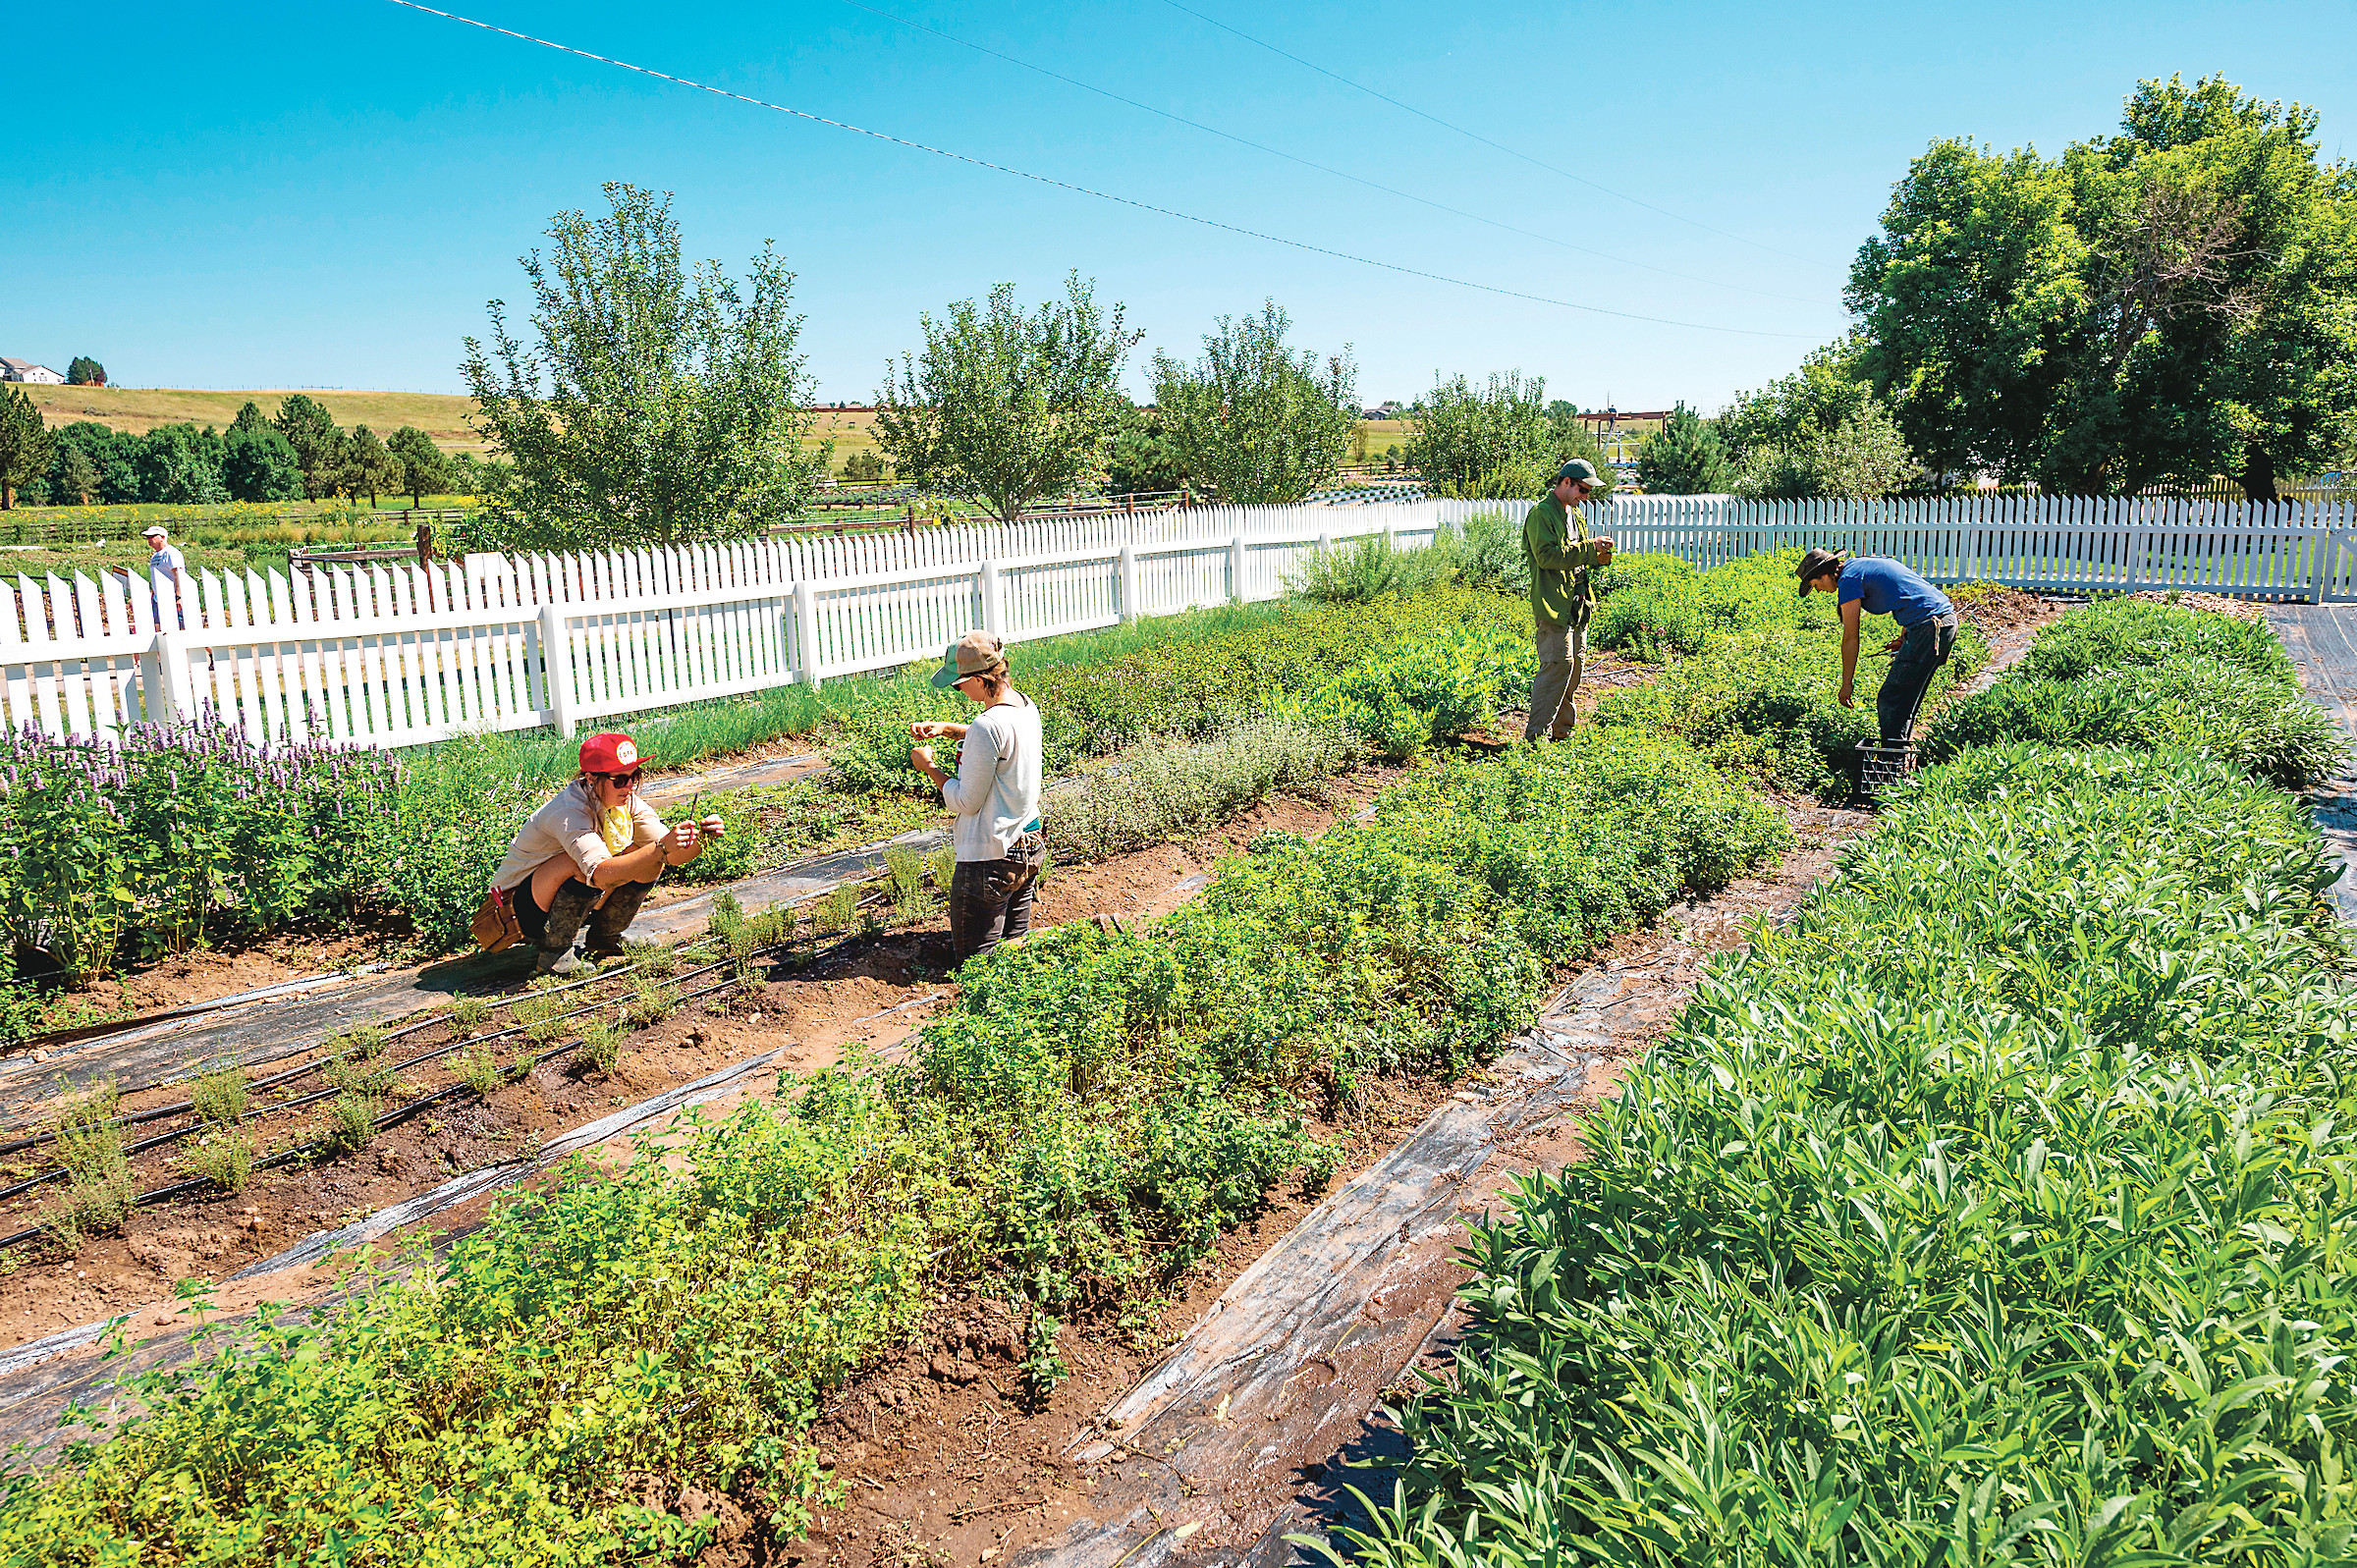 How Food Can Transform Community